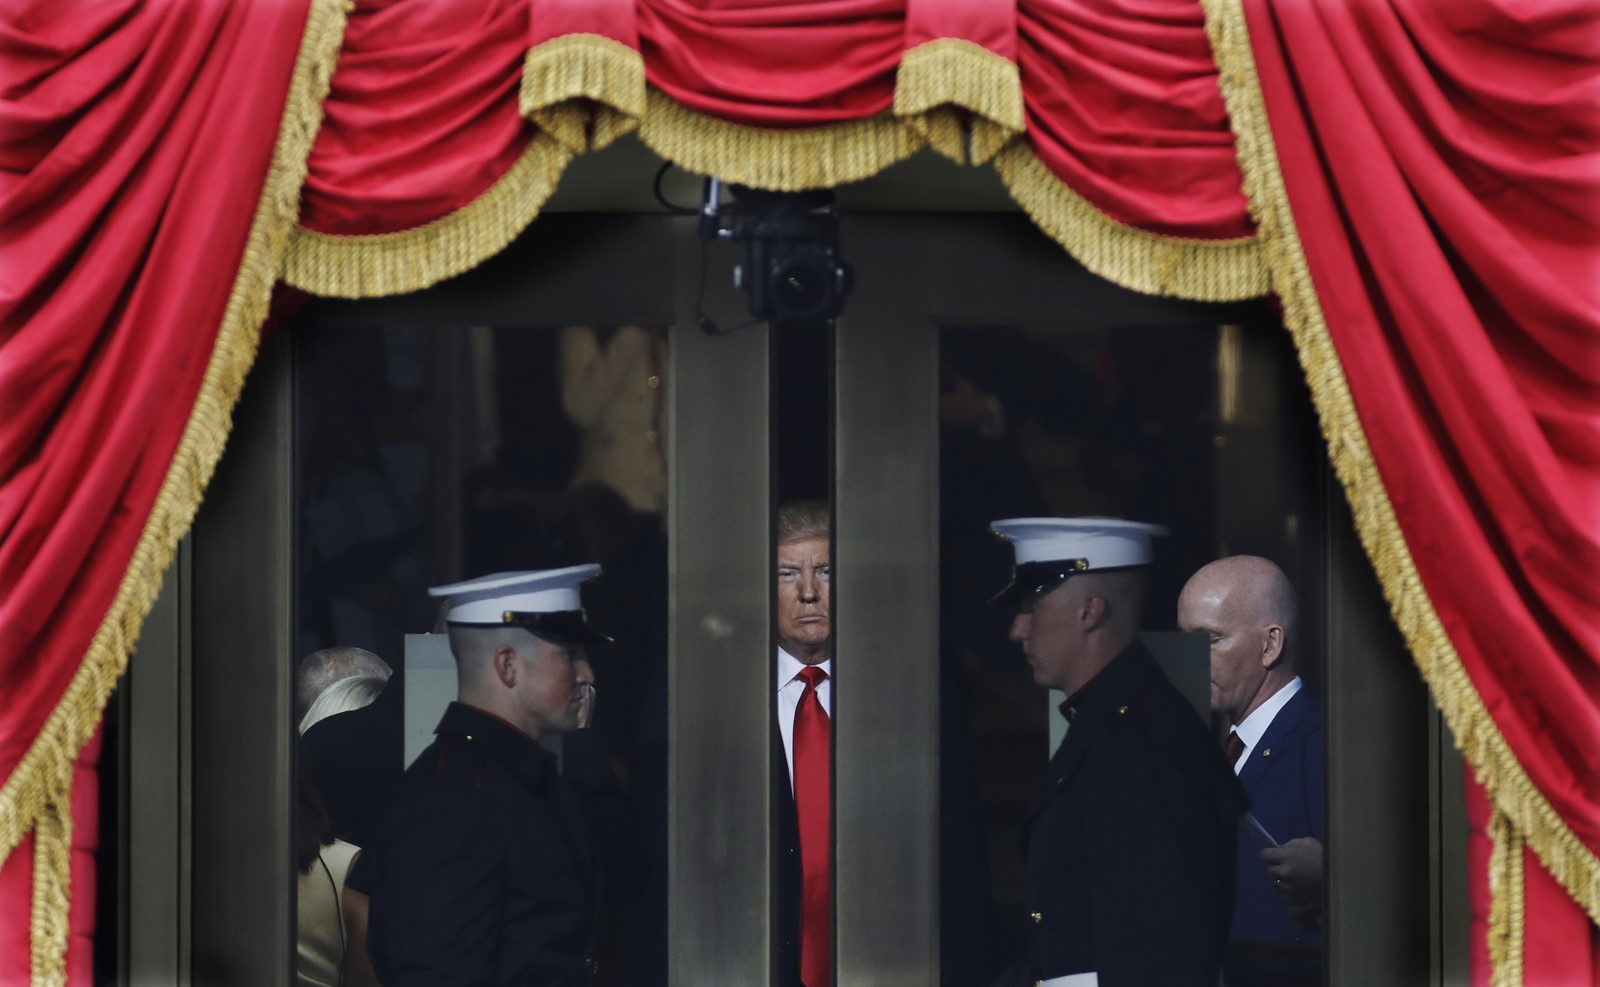 On January 20th, 2017, President-elect Donald Trump waits to be inaugurated at the U.S. Capitol building. — Photograph: Patrick Semansky/Associated Press.